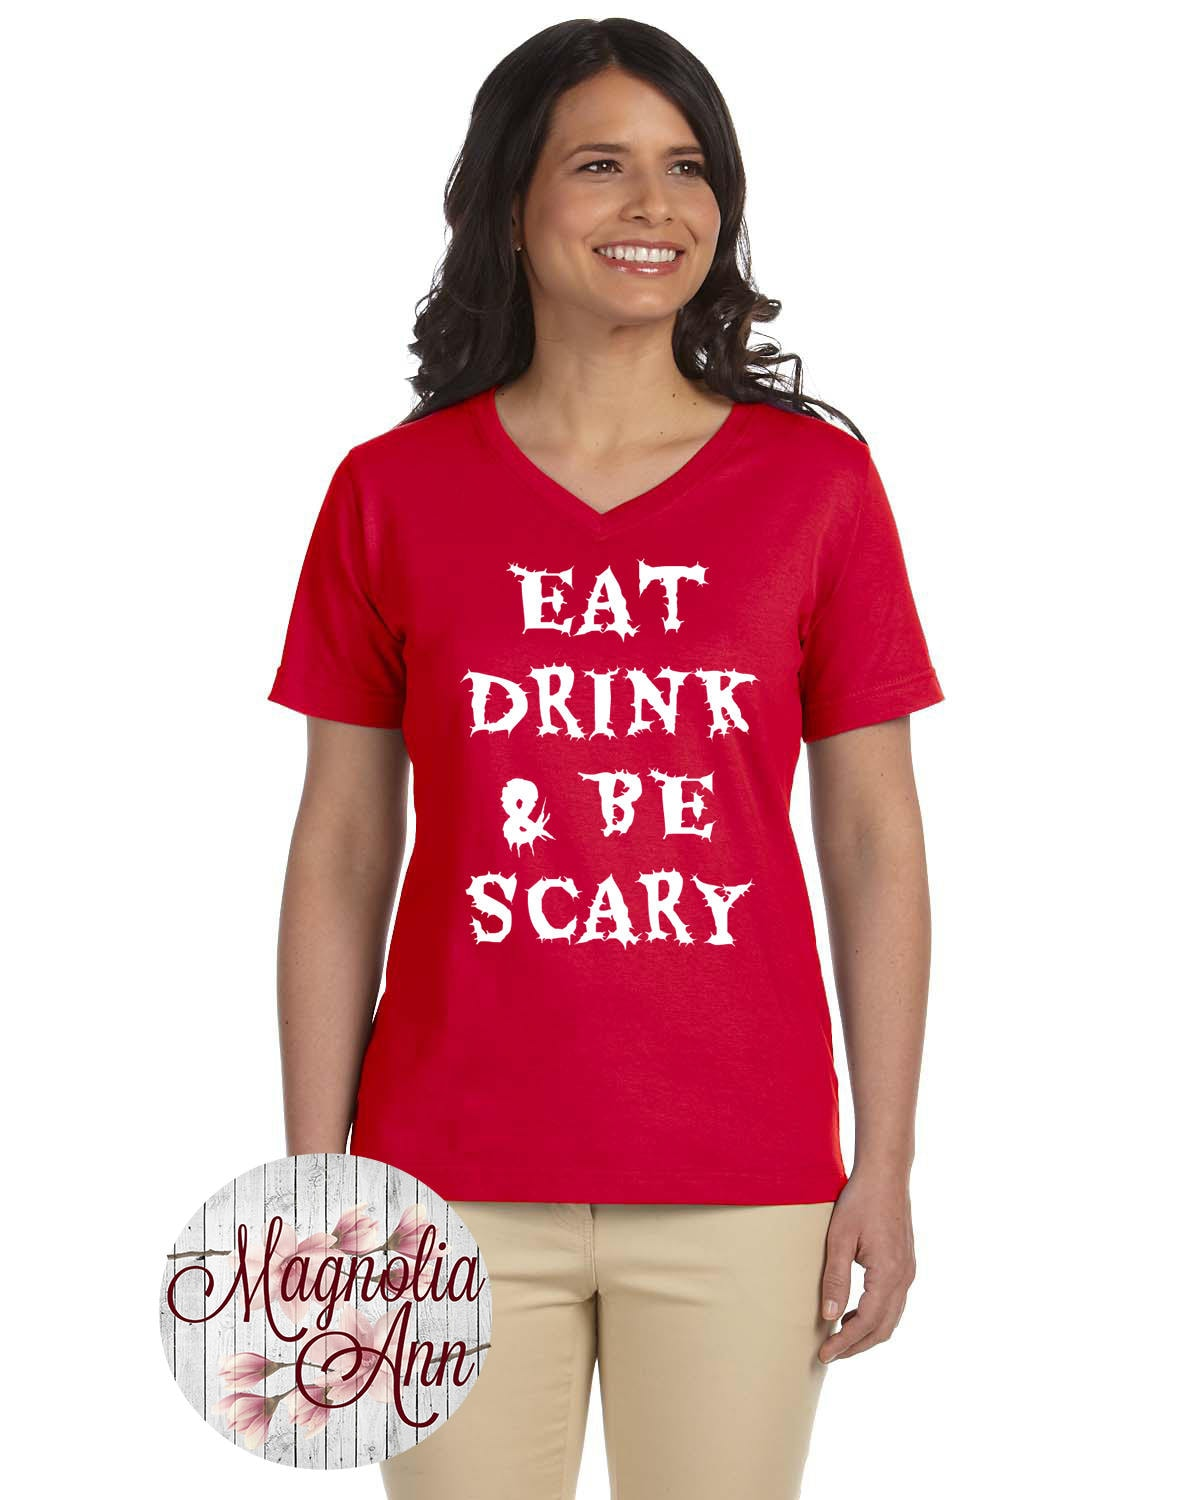 eat drink and be scary womens v neck t shirt plus size clothing plus size halloween halloween tee halloween t shirt halloween shirt